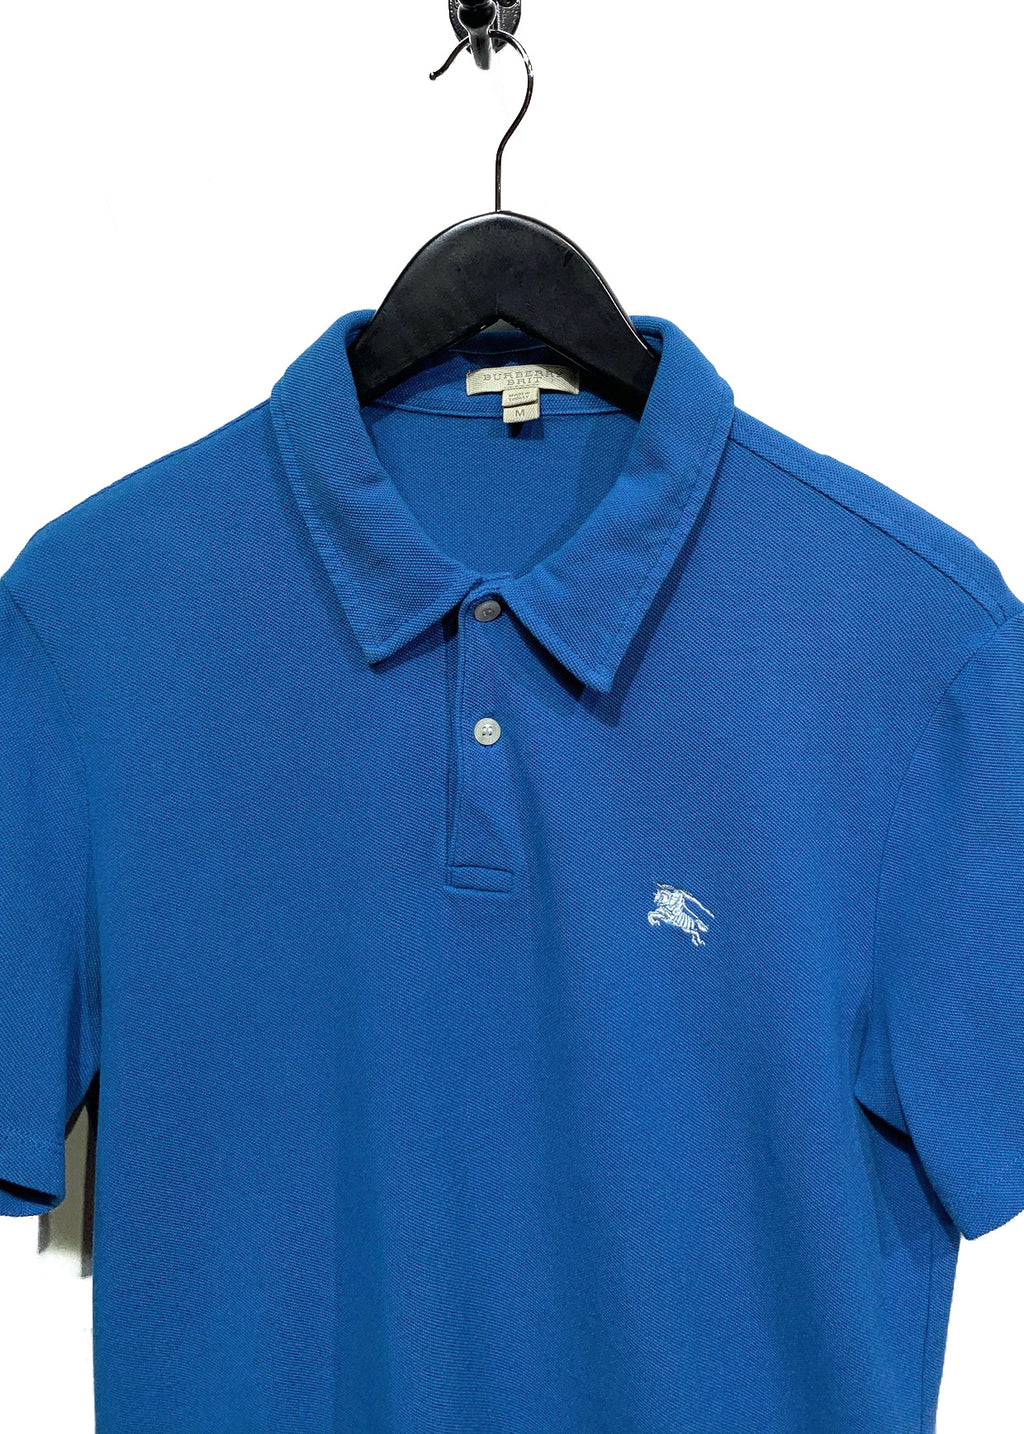 Burberry Blue Classic Iconic Polo Shirt